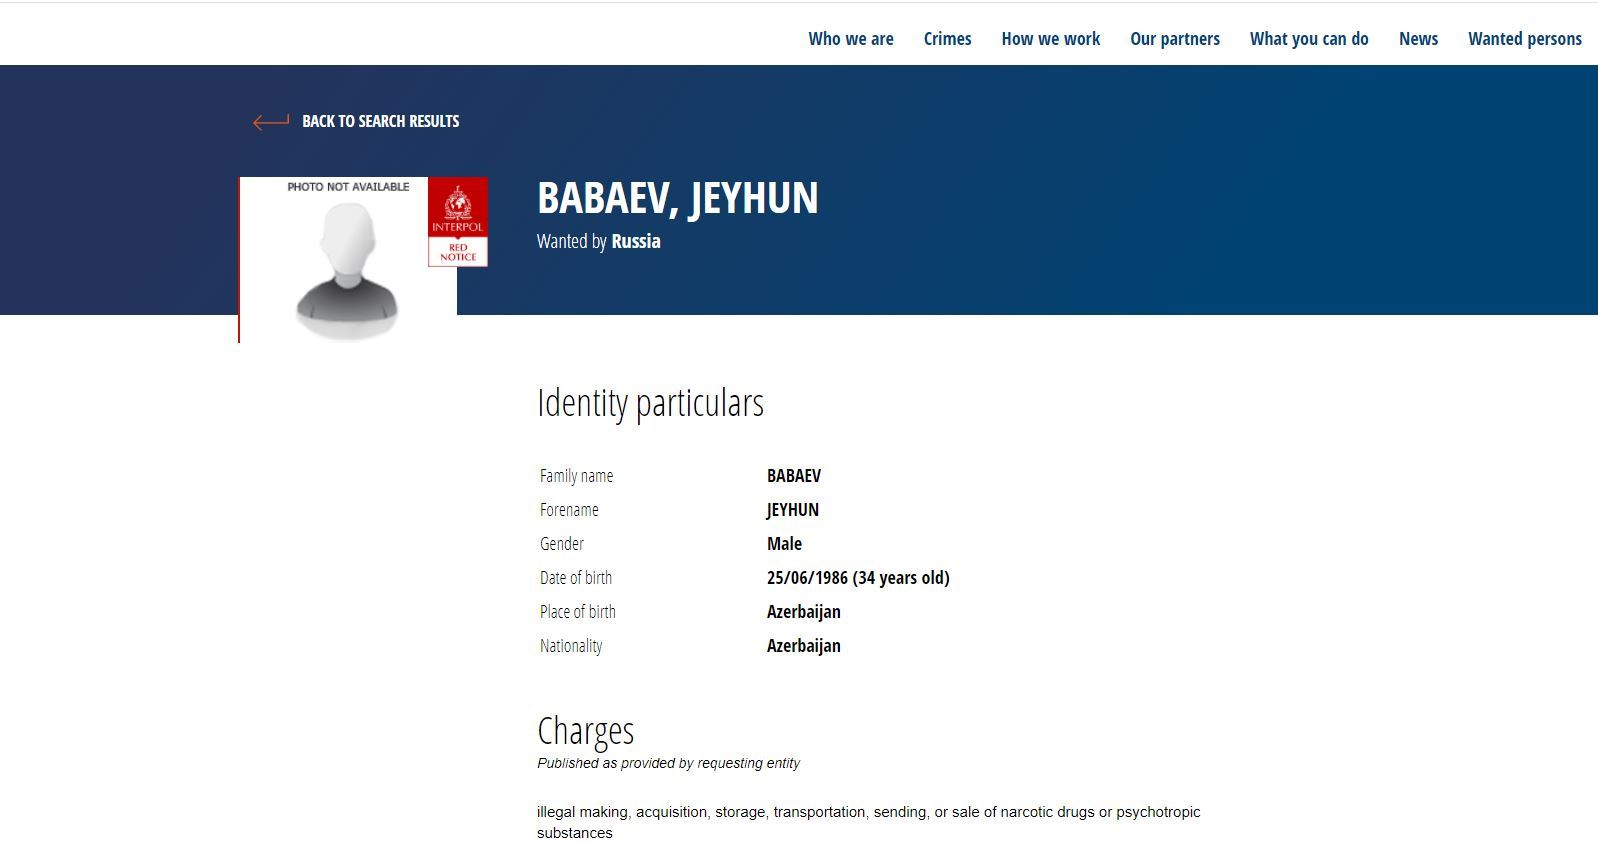 Russia declared wanted 34 years old Azerbaijani through Interpol